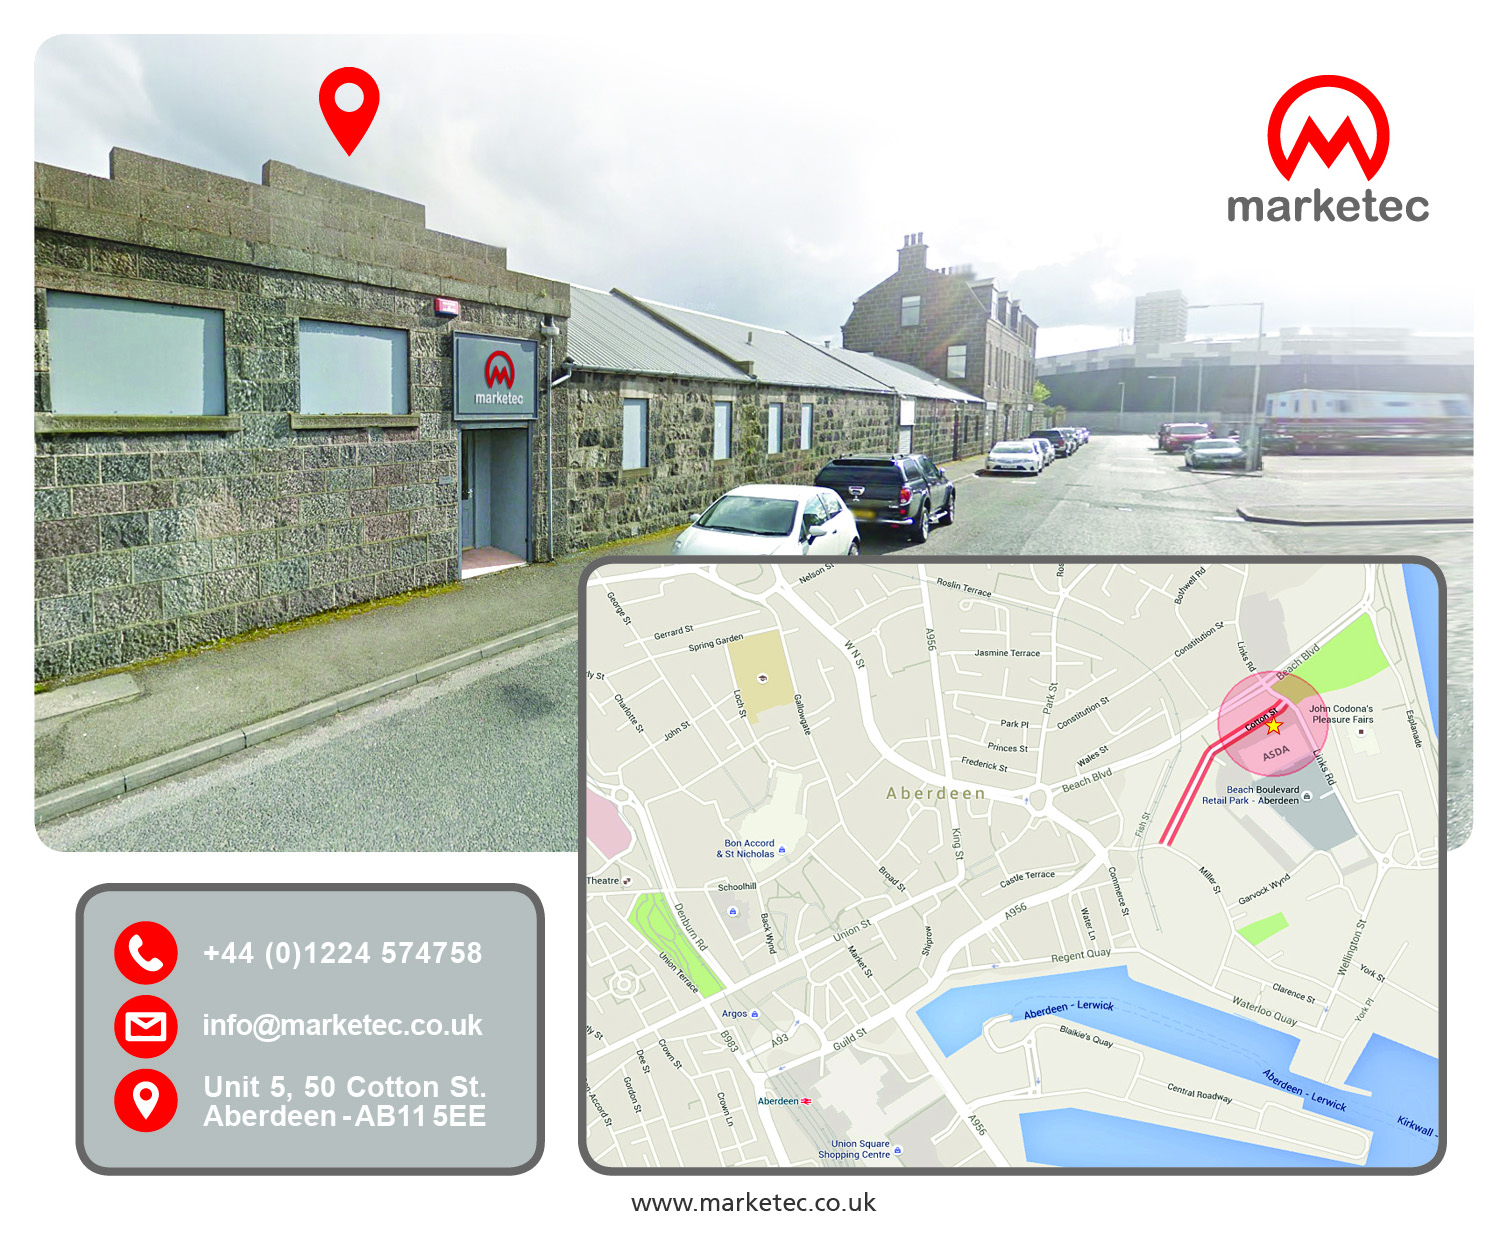 Marketec Location - contact